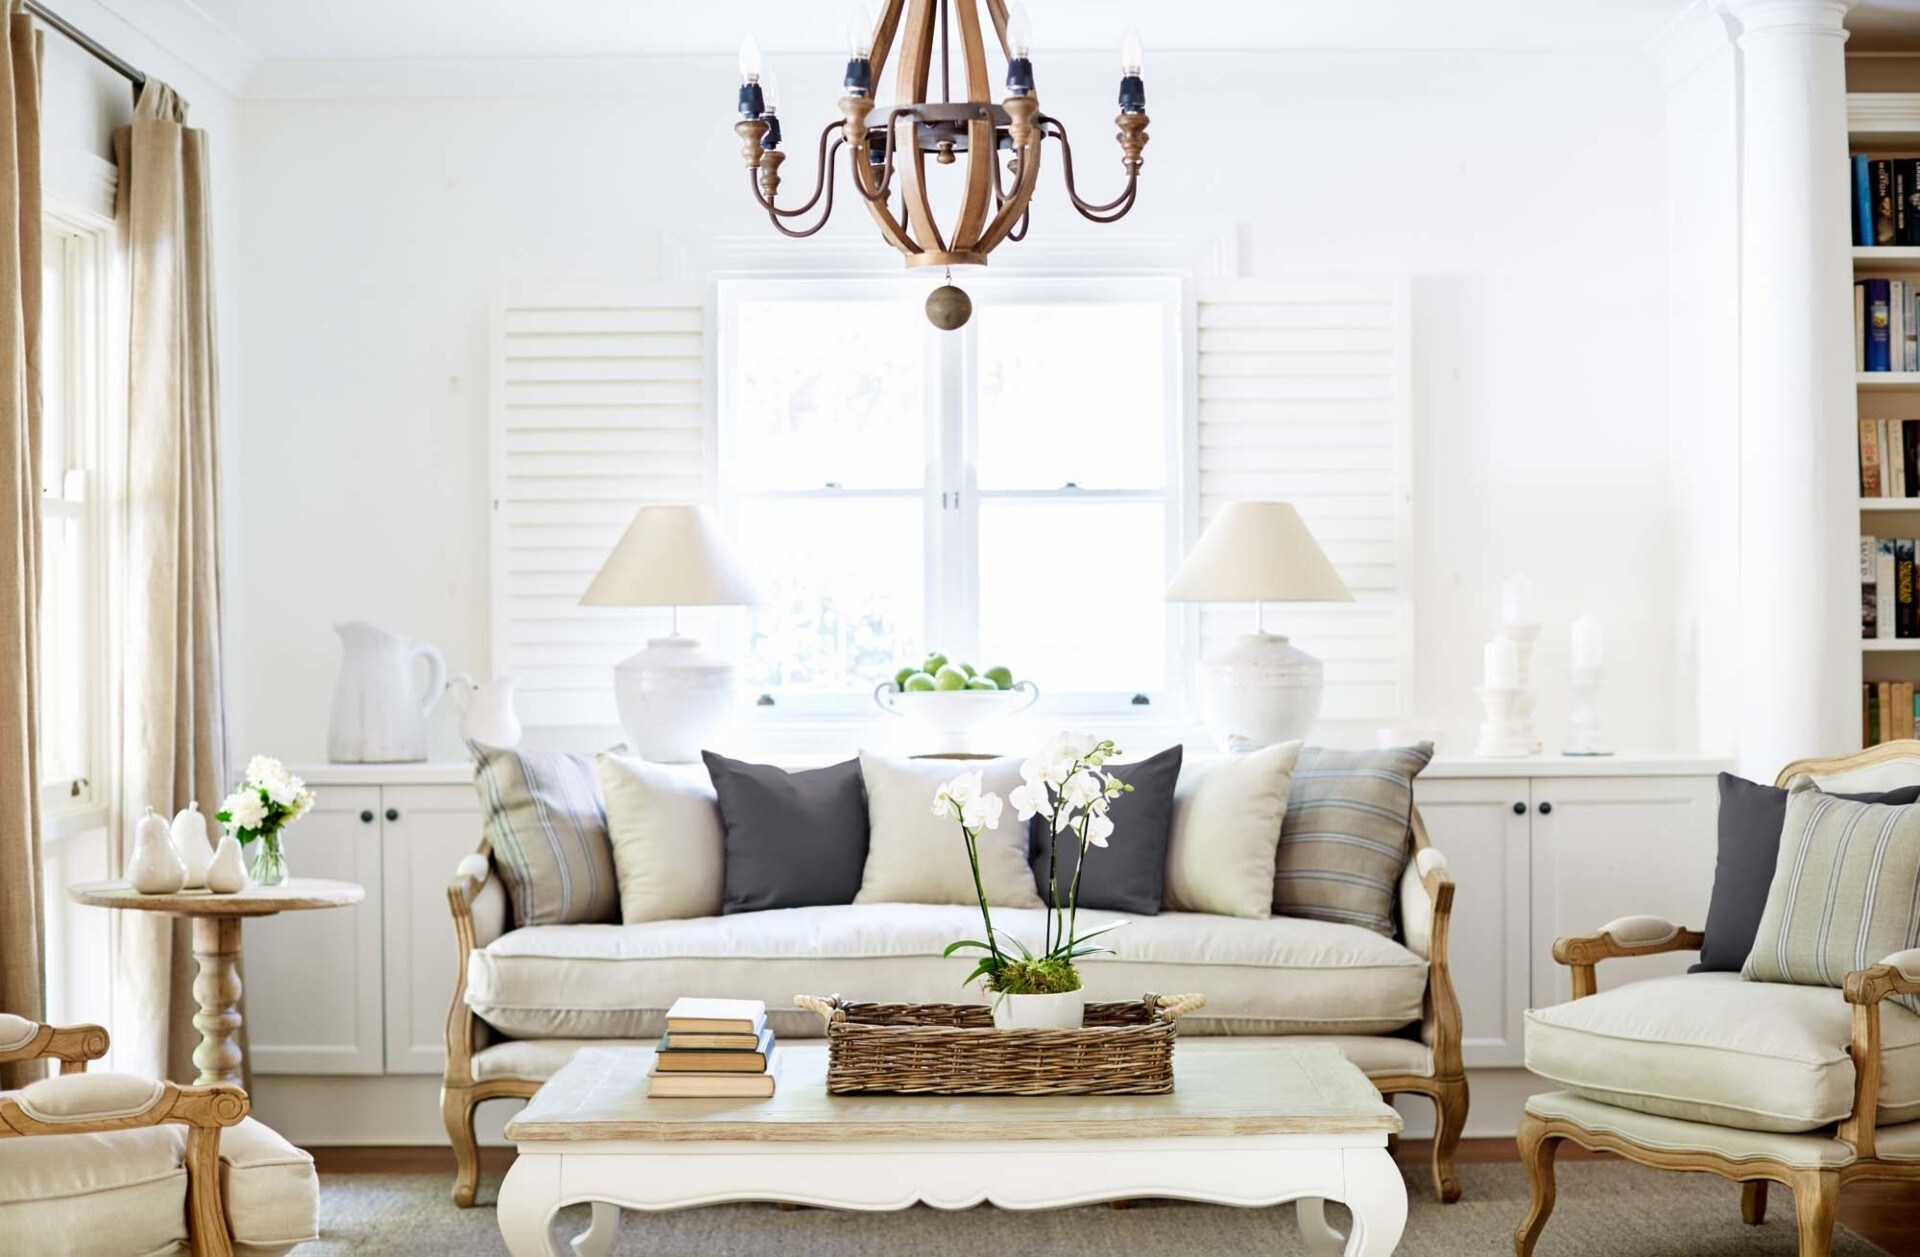 French Provincial Lighting Australia Nine Ways To Master French Provincial Style In Your Interiors